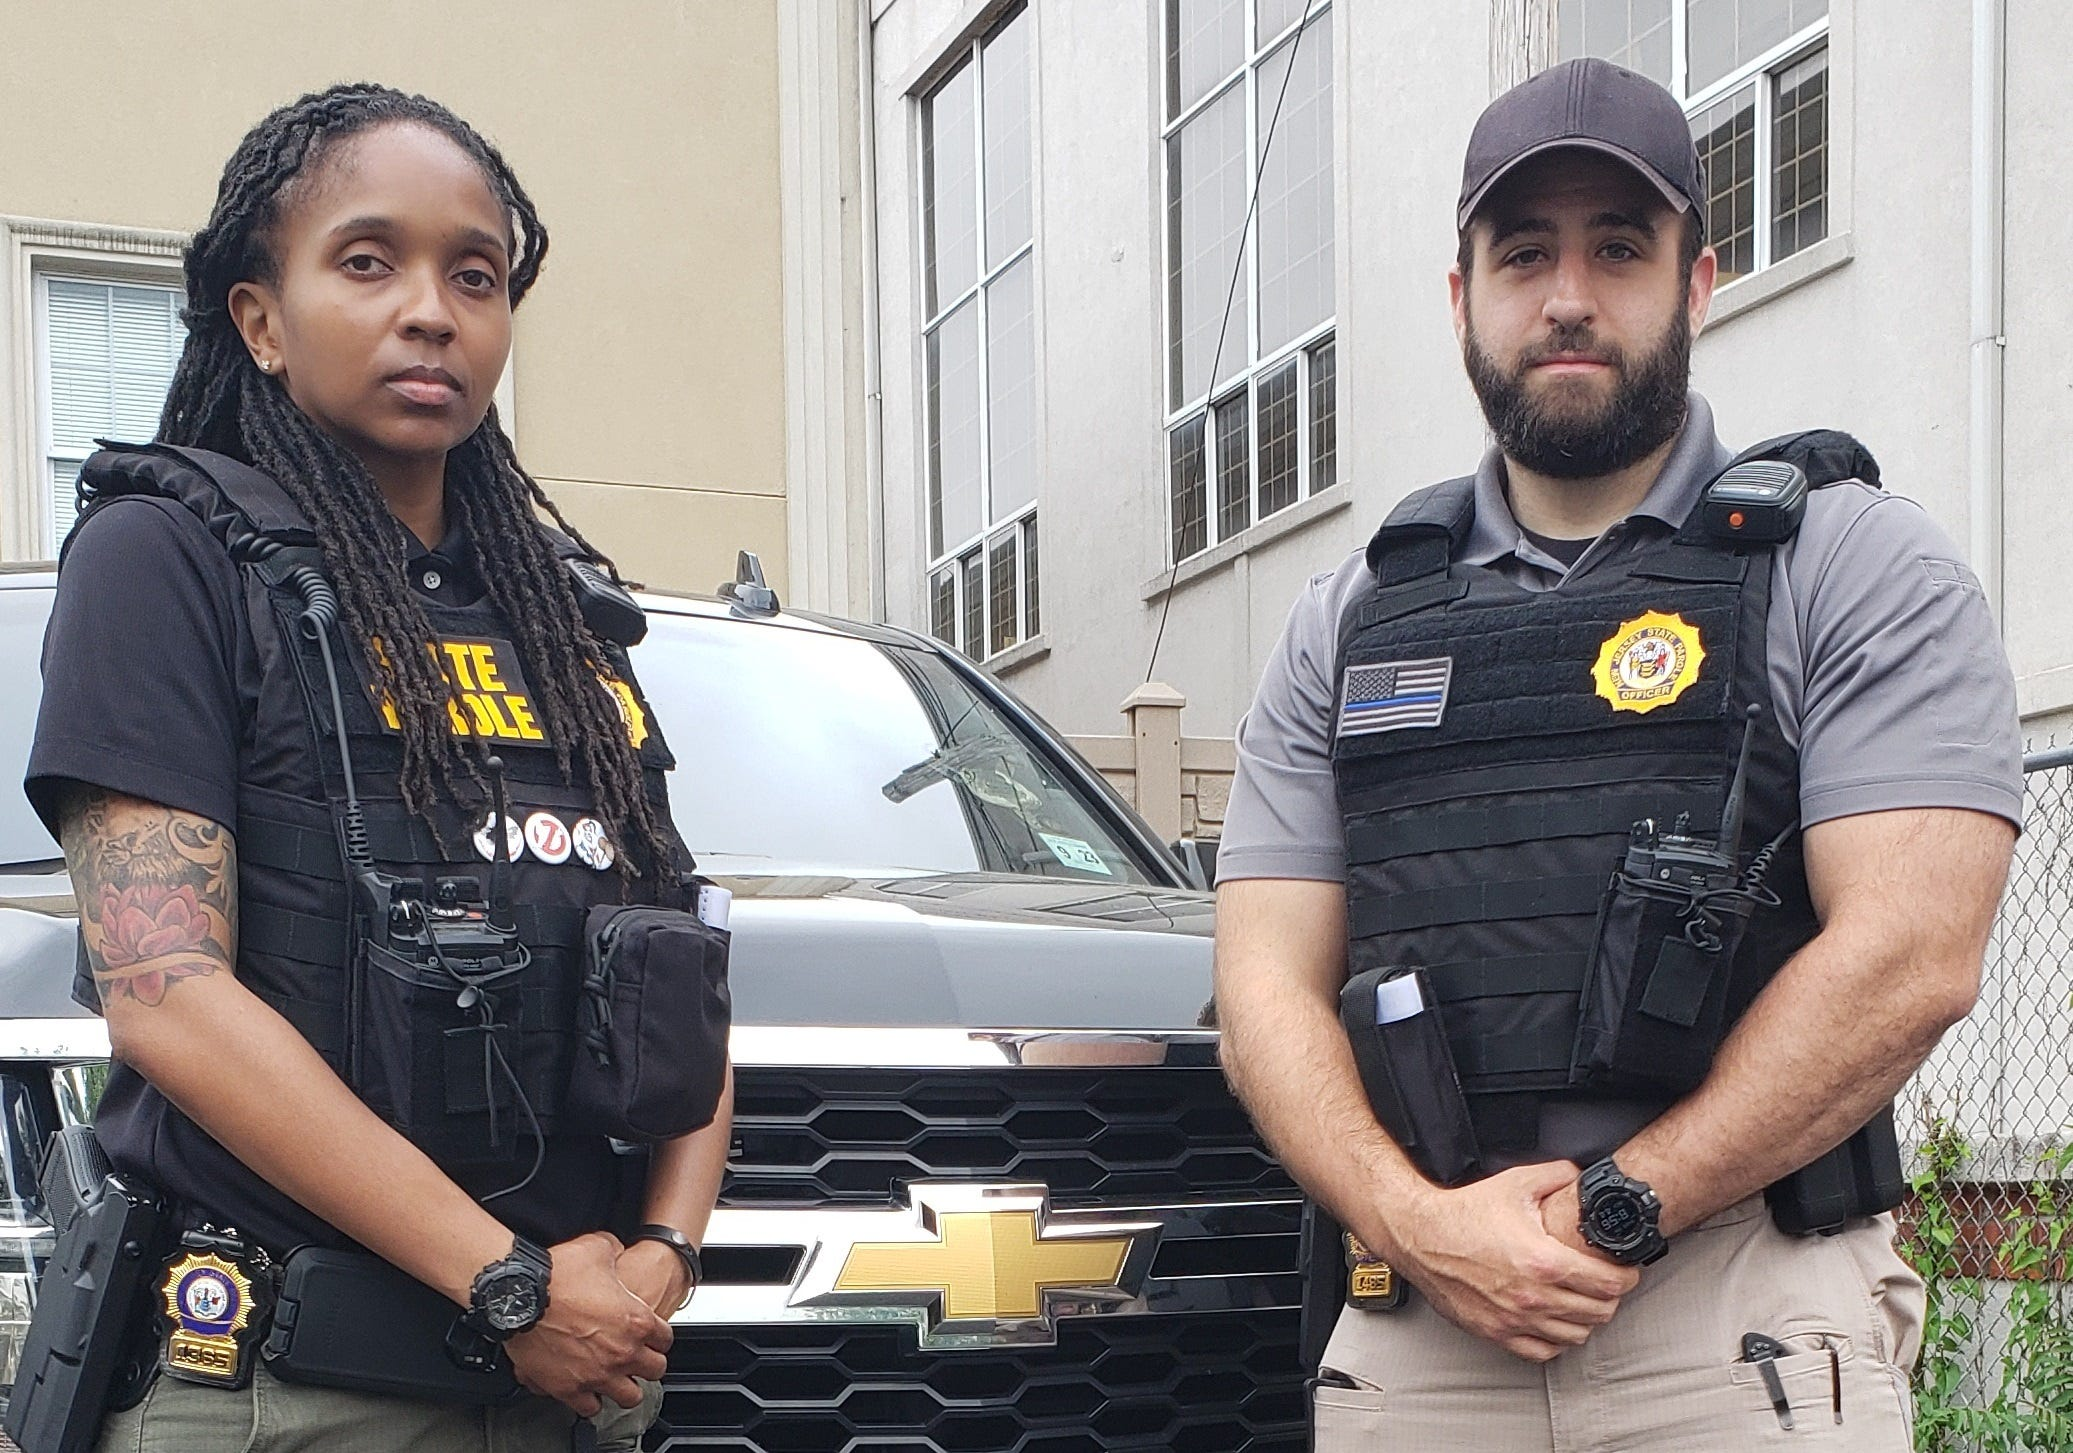 NJ parole officers save woman from crushed car in Paramus